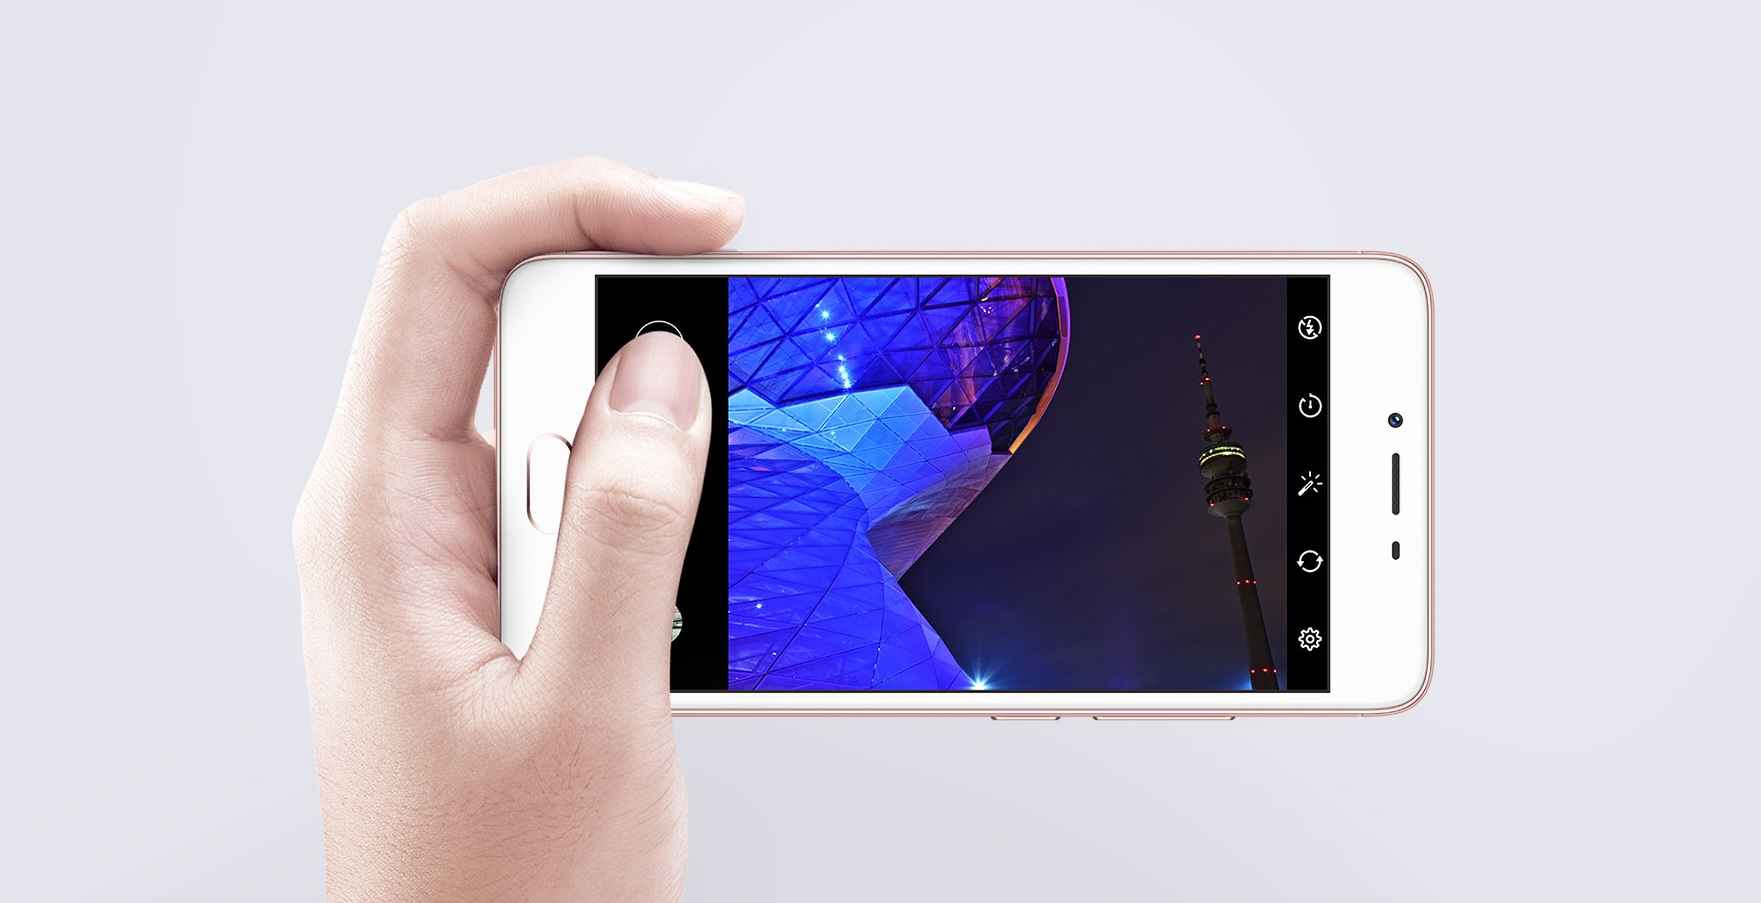 meizu m3s mini kamera i video